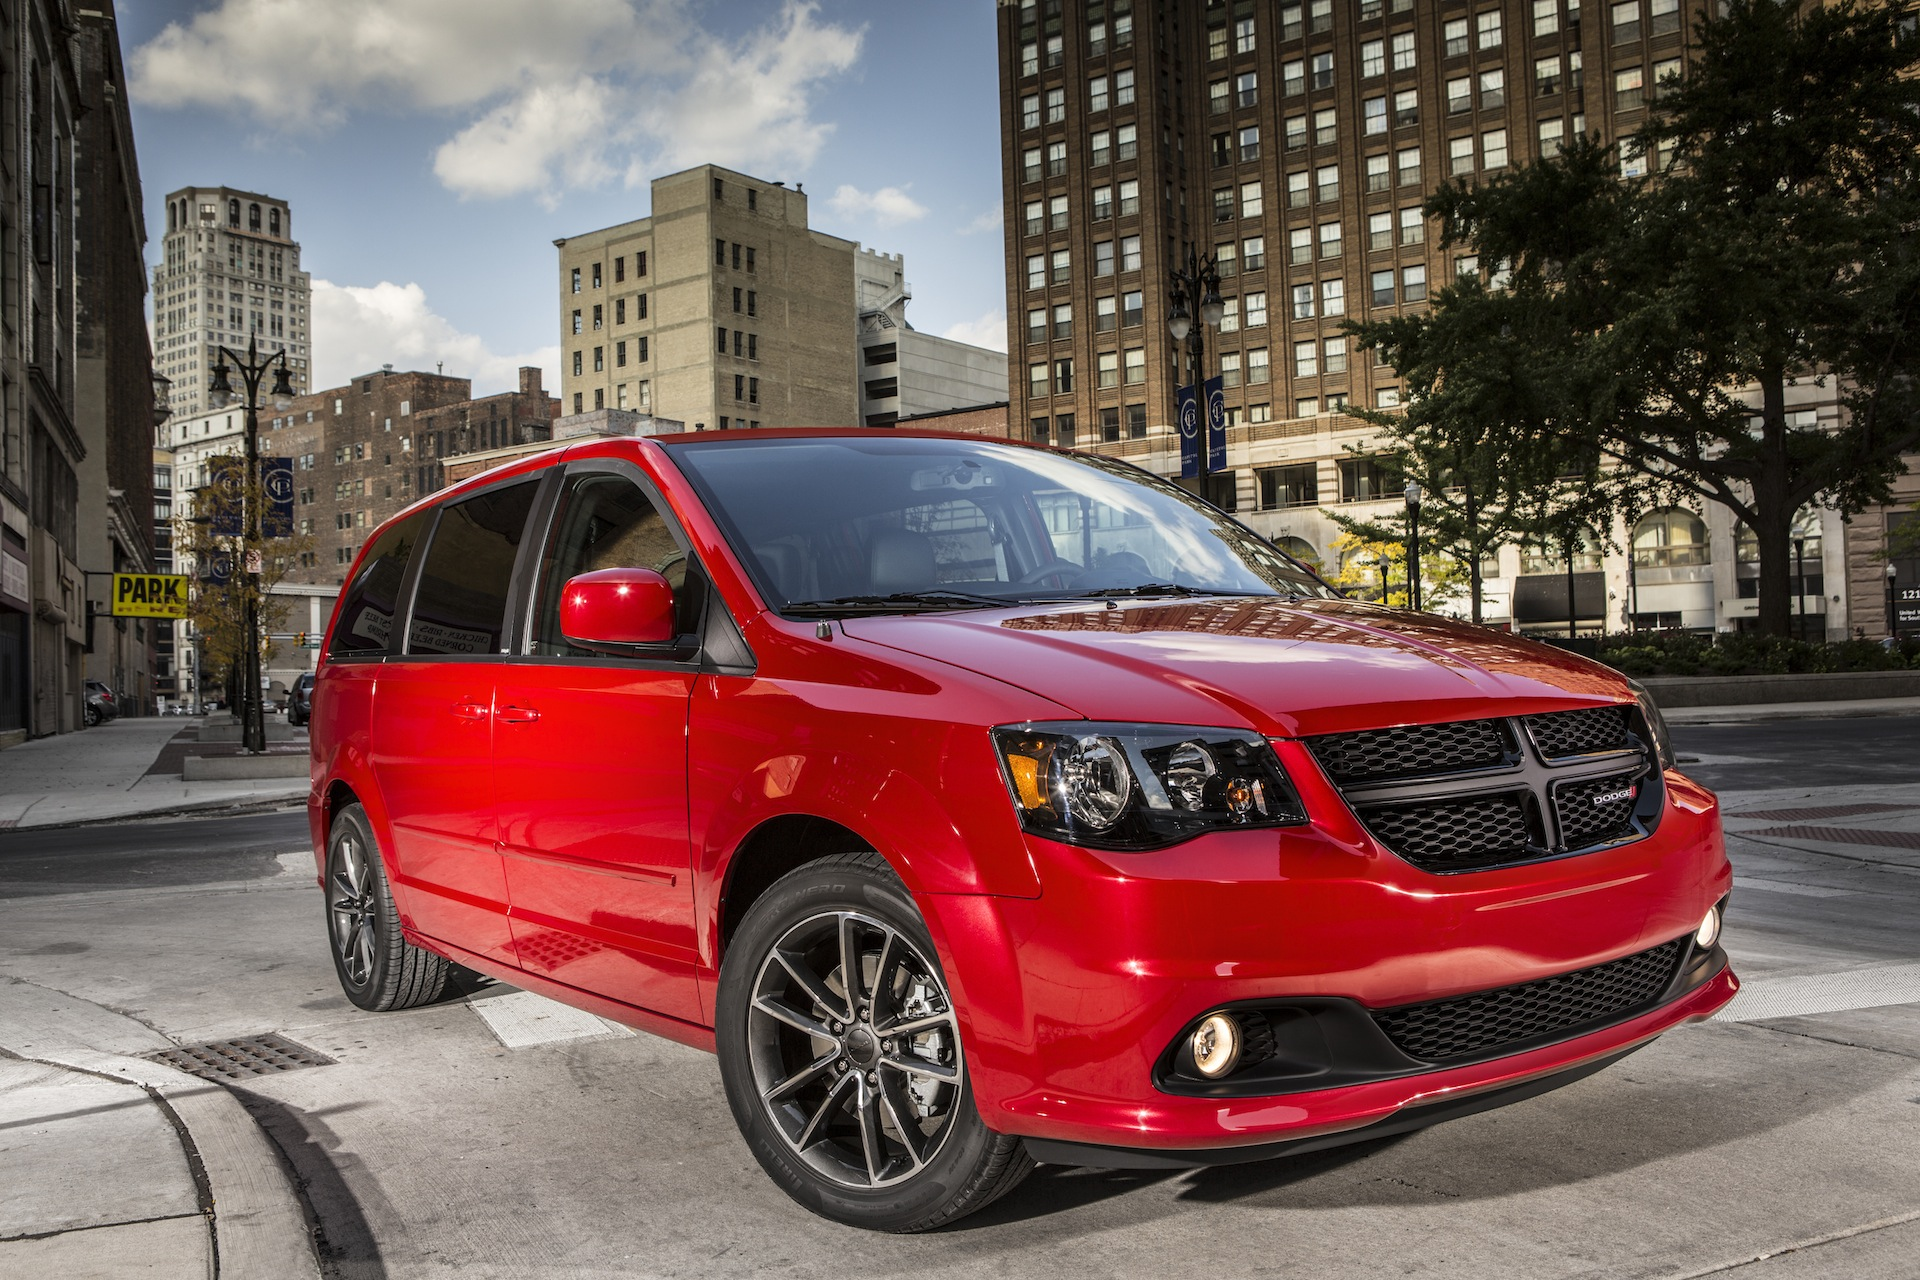 2014-dodge-grand-caravan_100435746_h Great Description About 2012 Chrysler town and Country Recalls with Amazing Photos Cars Review